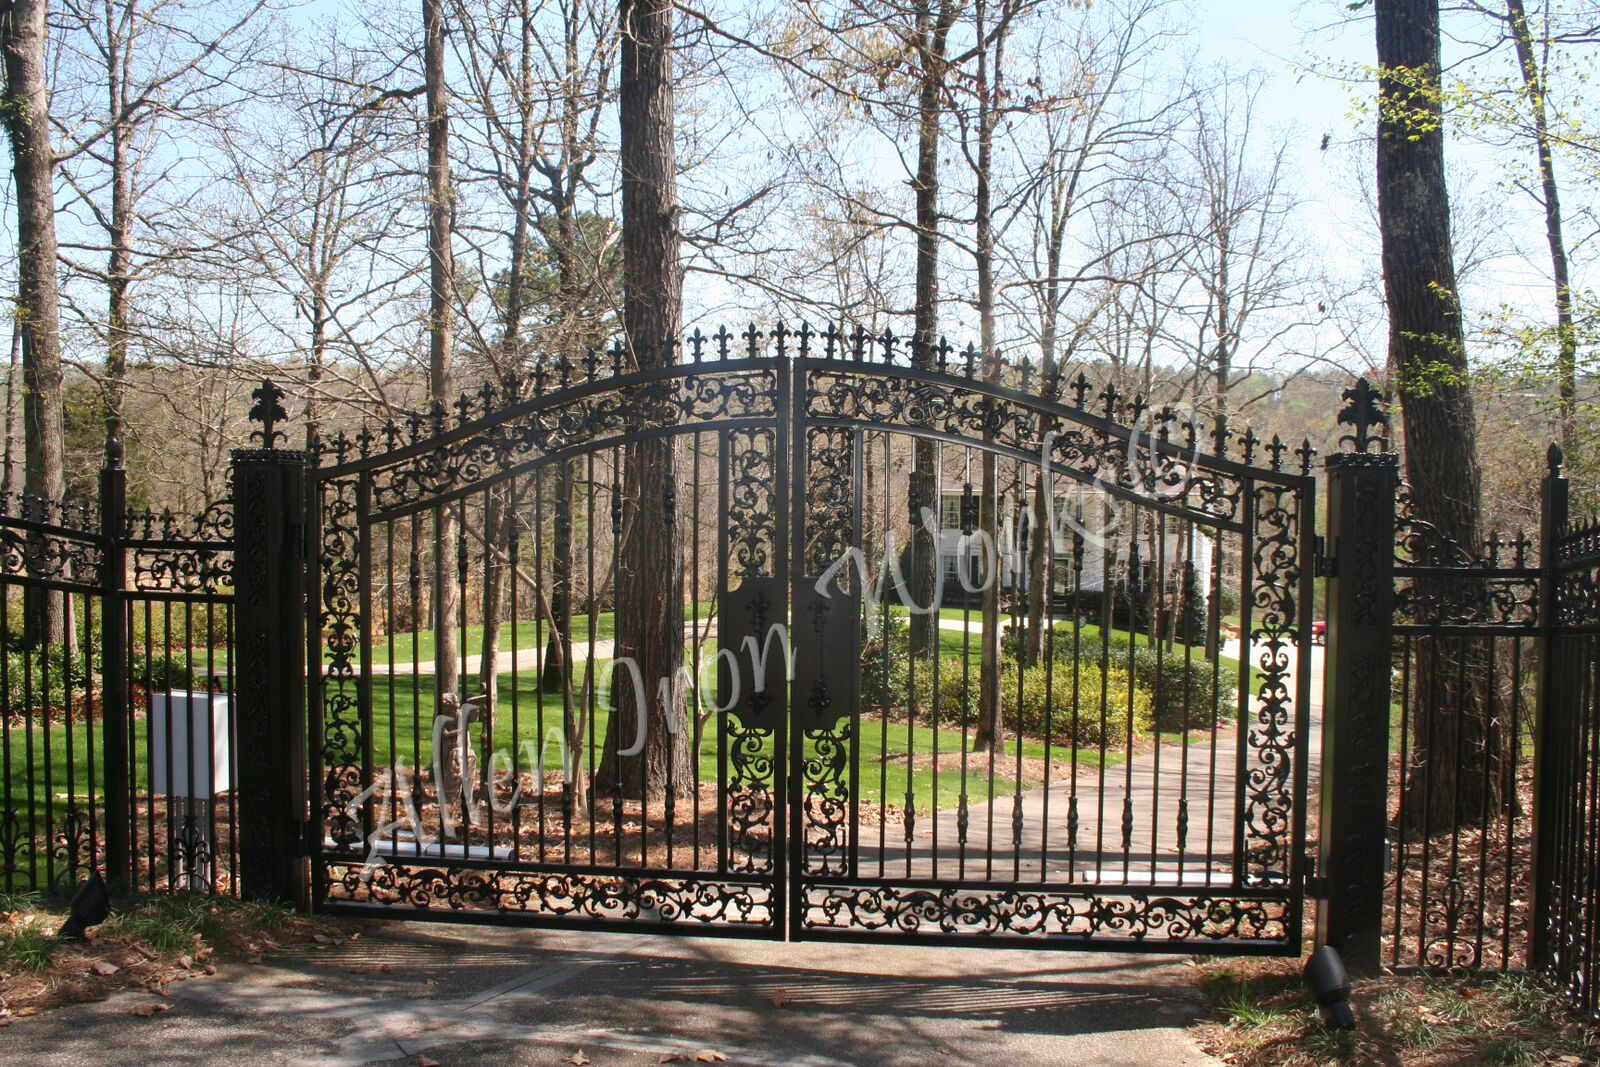 arched-iron-gate-birmingham-al-with-pontalba-cast-iron-designs-and-fleur-de-lis-spears